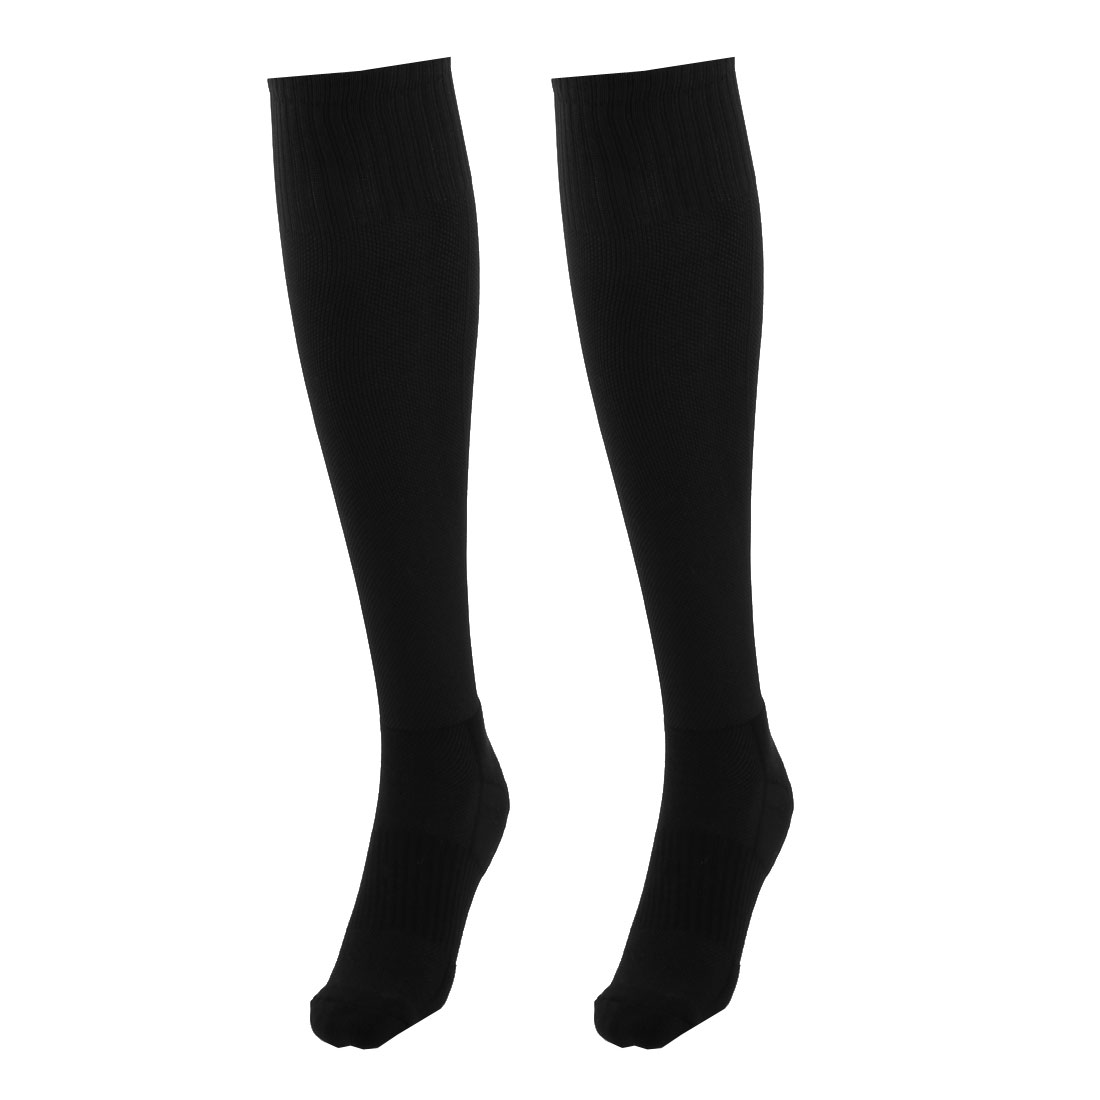 Adult Cotton Blends Knee High Style Hockey Rugby Soccer Football Sports Long Socks Black Pair